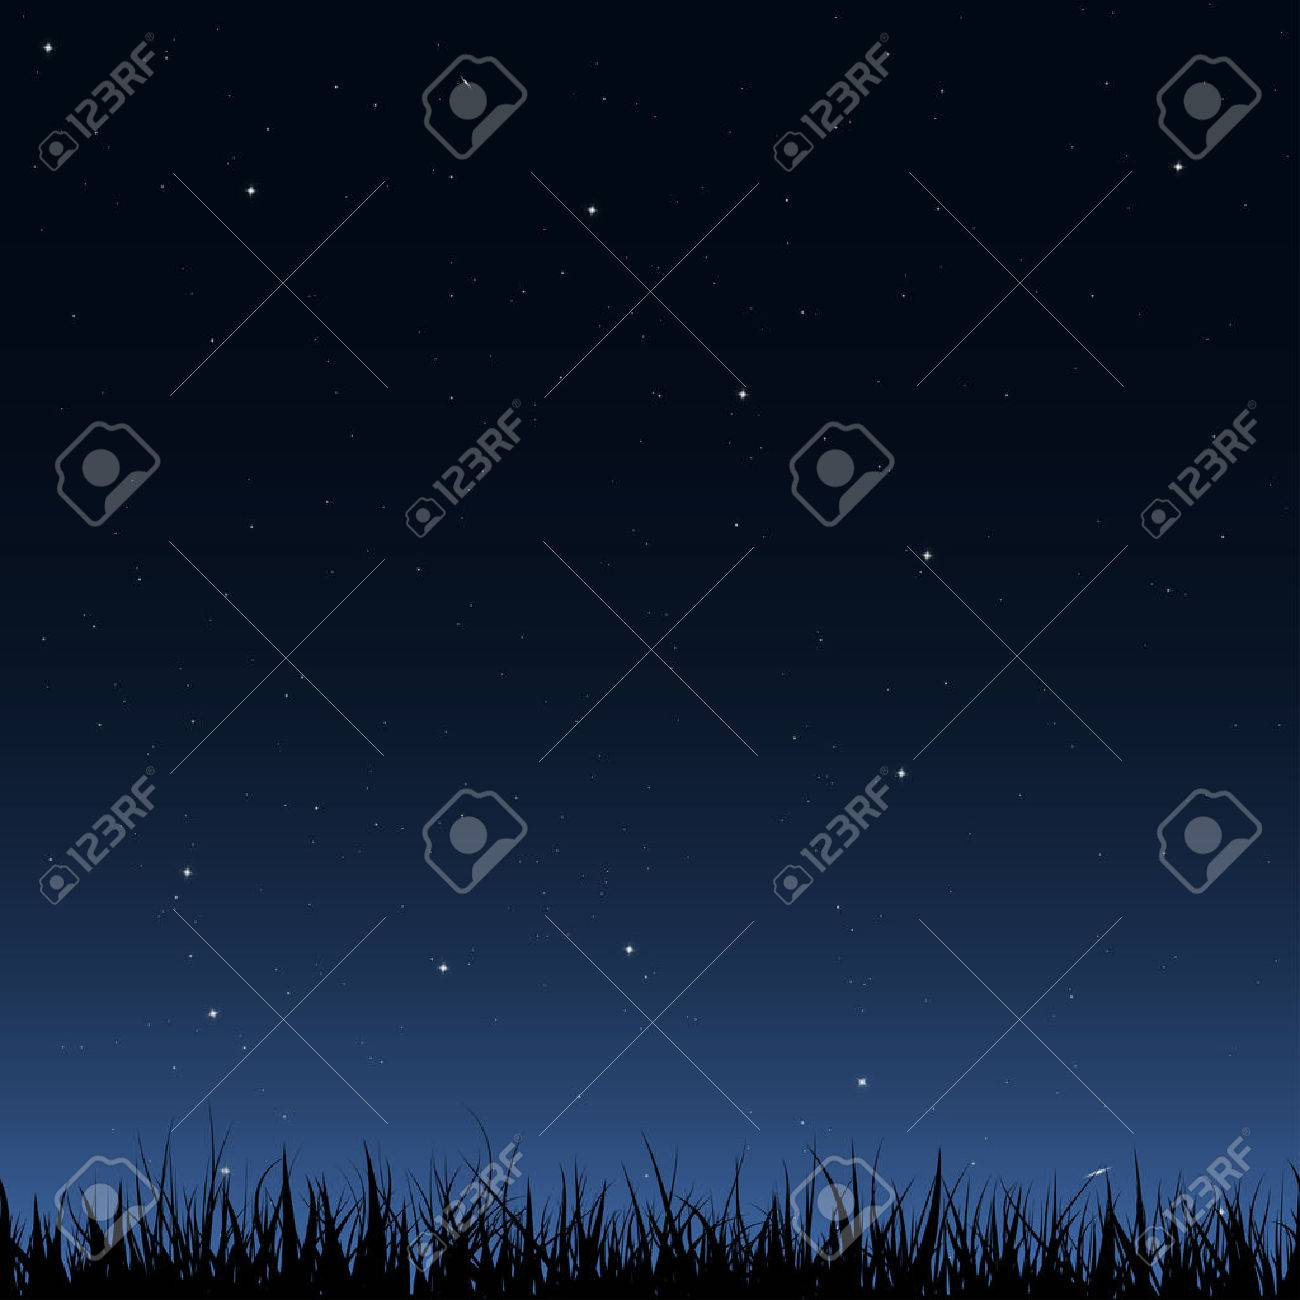 Horizontal seamless vector image. Black silhouette of grass under the night sky with a lot of stars and galaxies. - 36570592